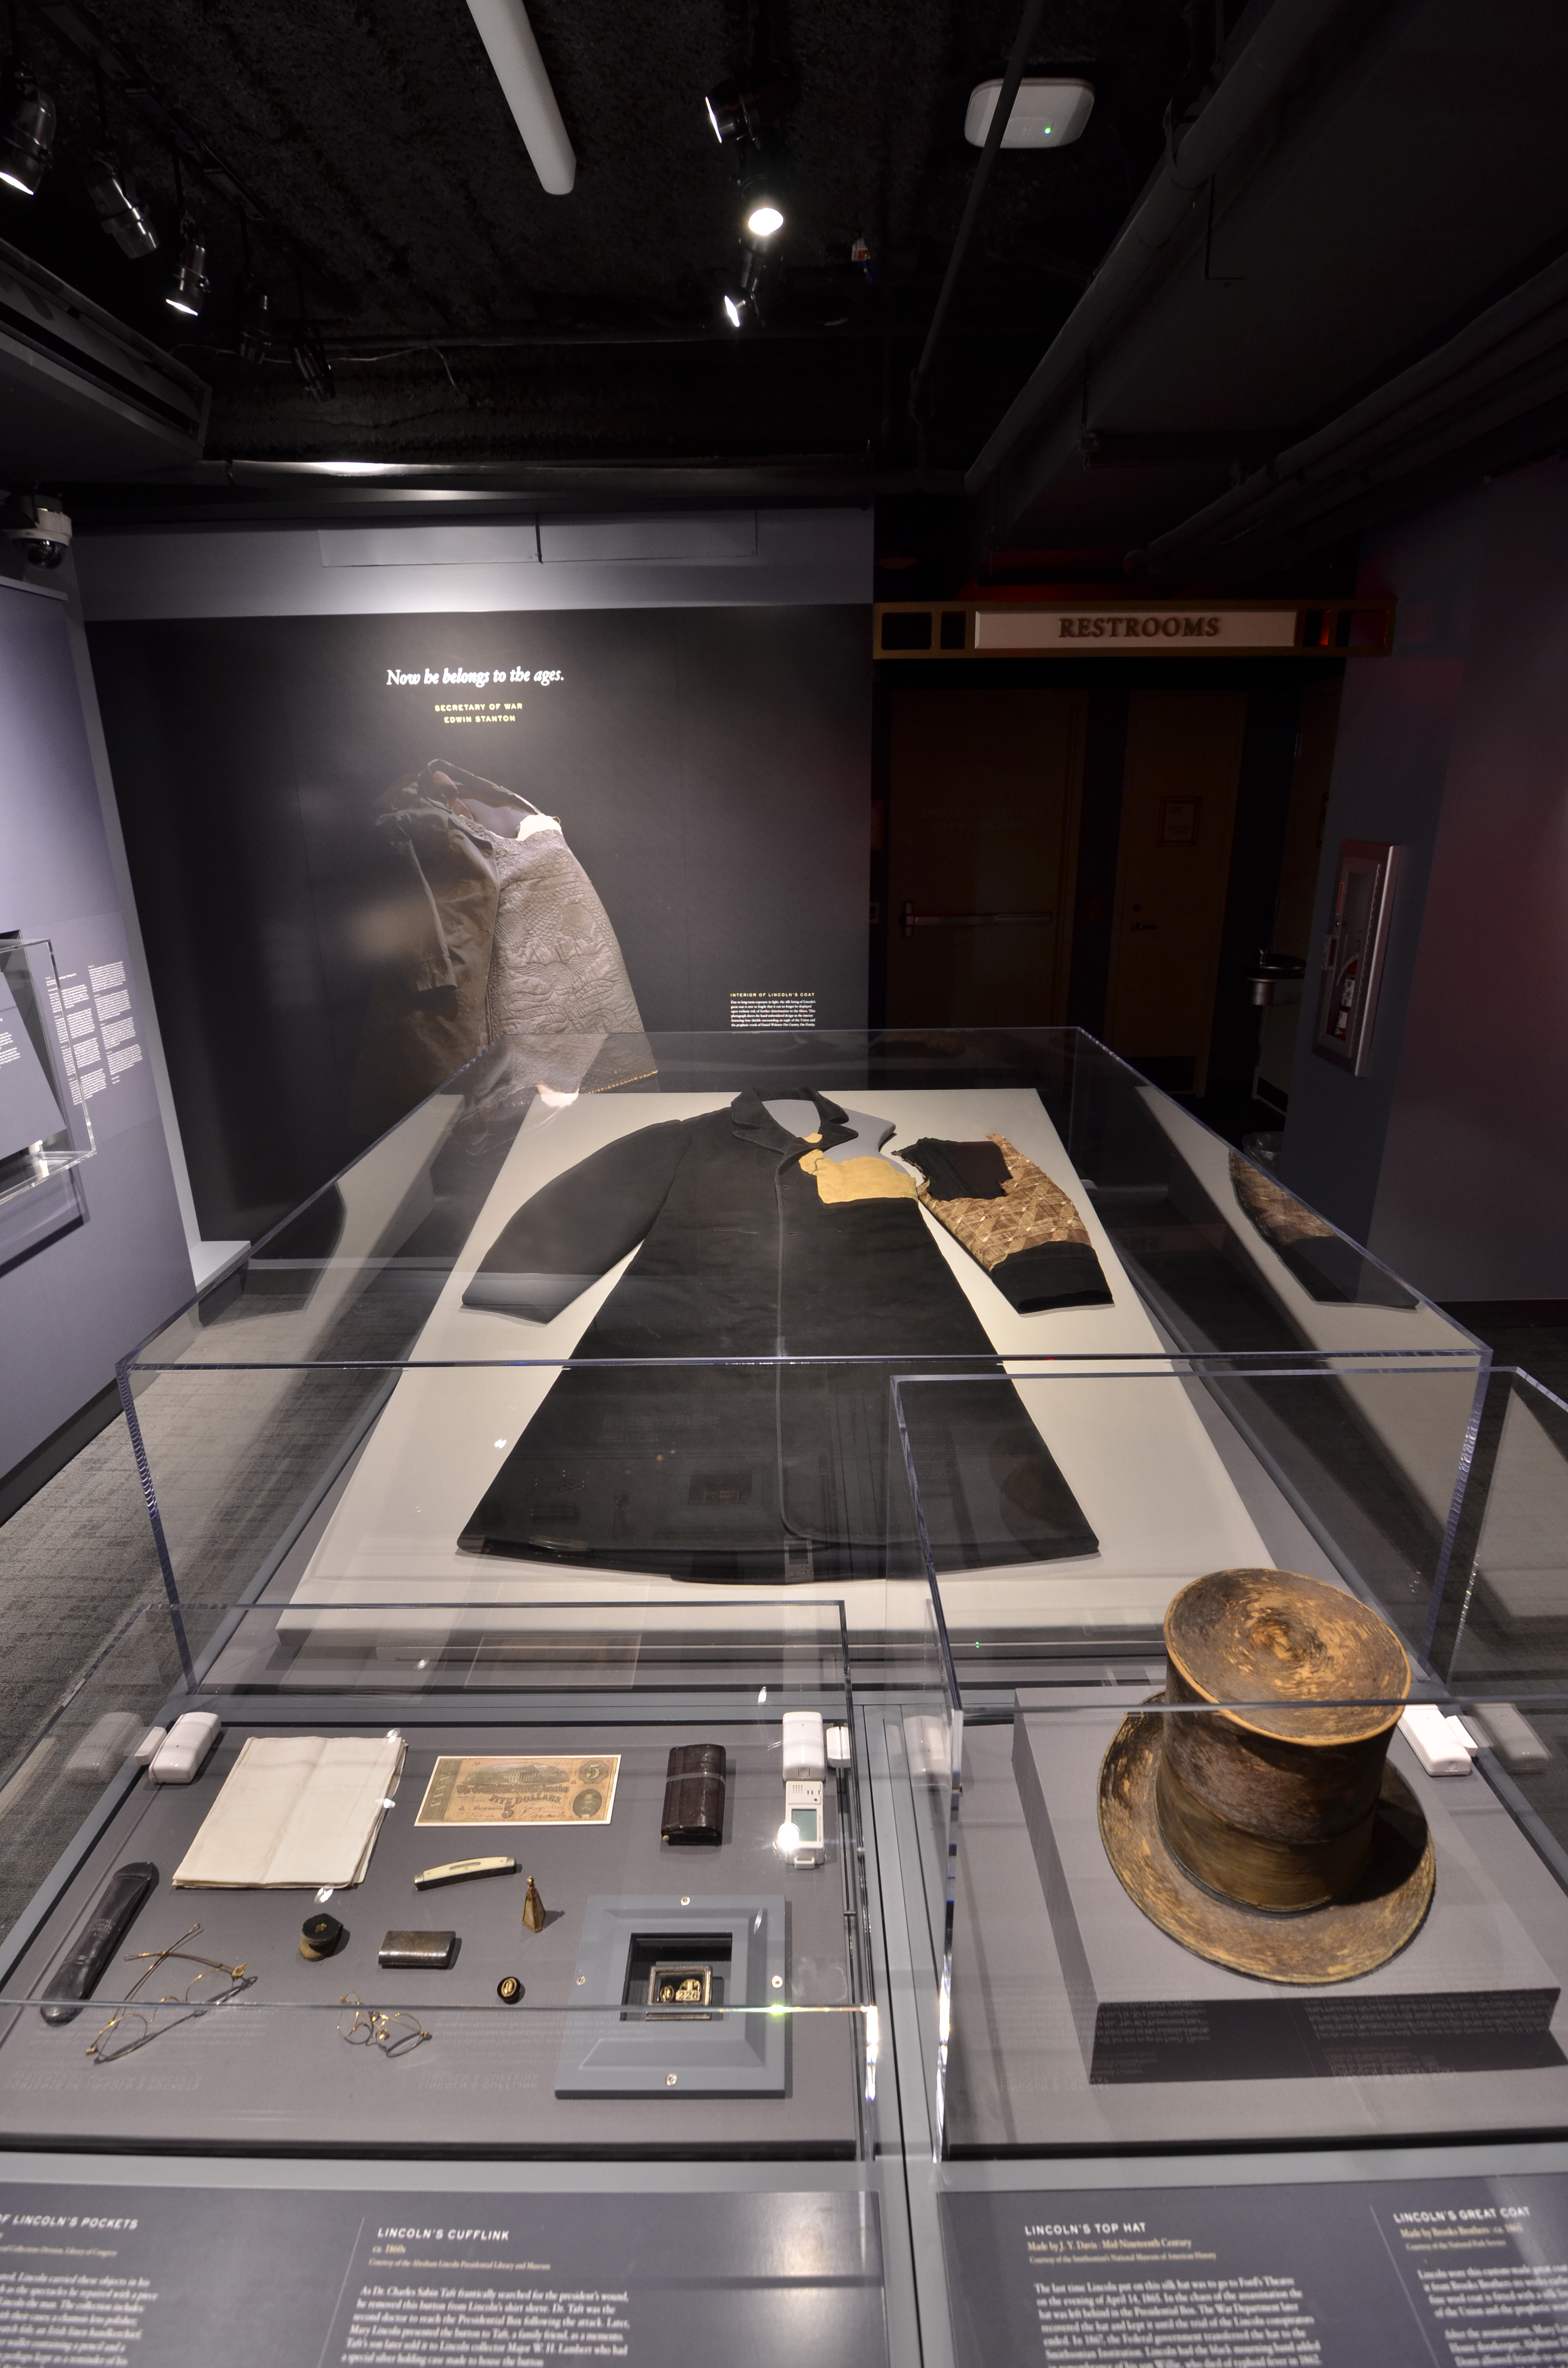 Items sit in a large, flat museum case. Pieces are Abraham Lincoln's black-wool Great Coat, his signature Top Hat, contents of his pockets including a Confederate bill, spectacles and a pocket watch,